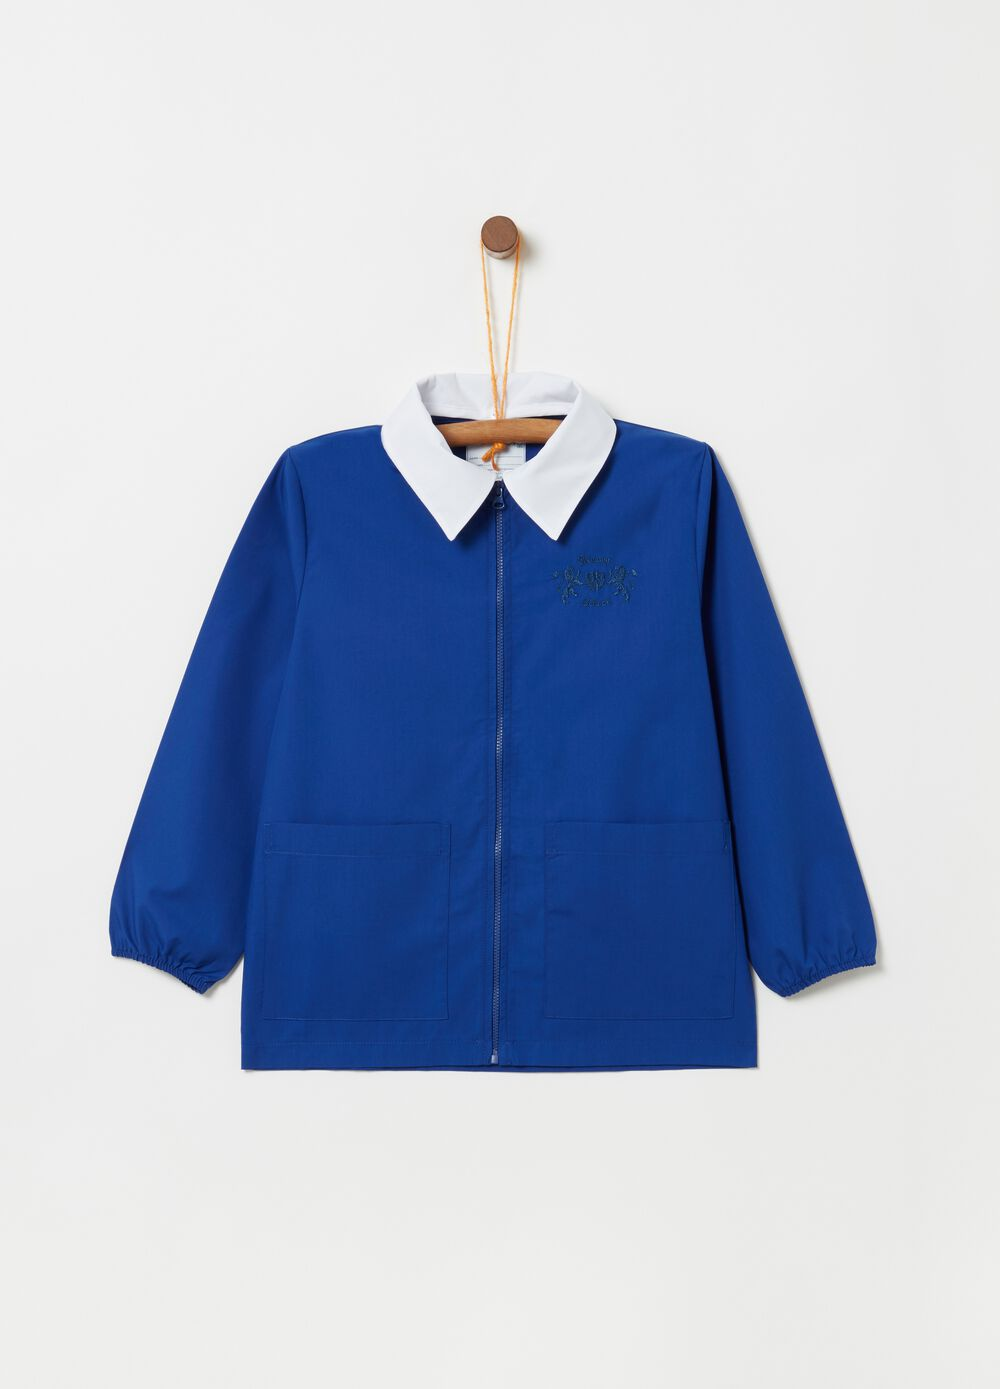 School smock with contrasting collar and zip fastening